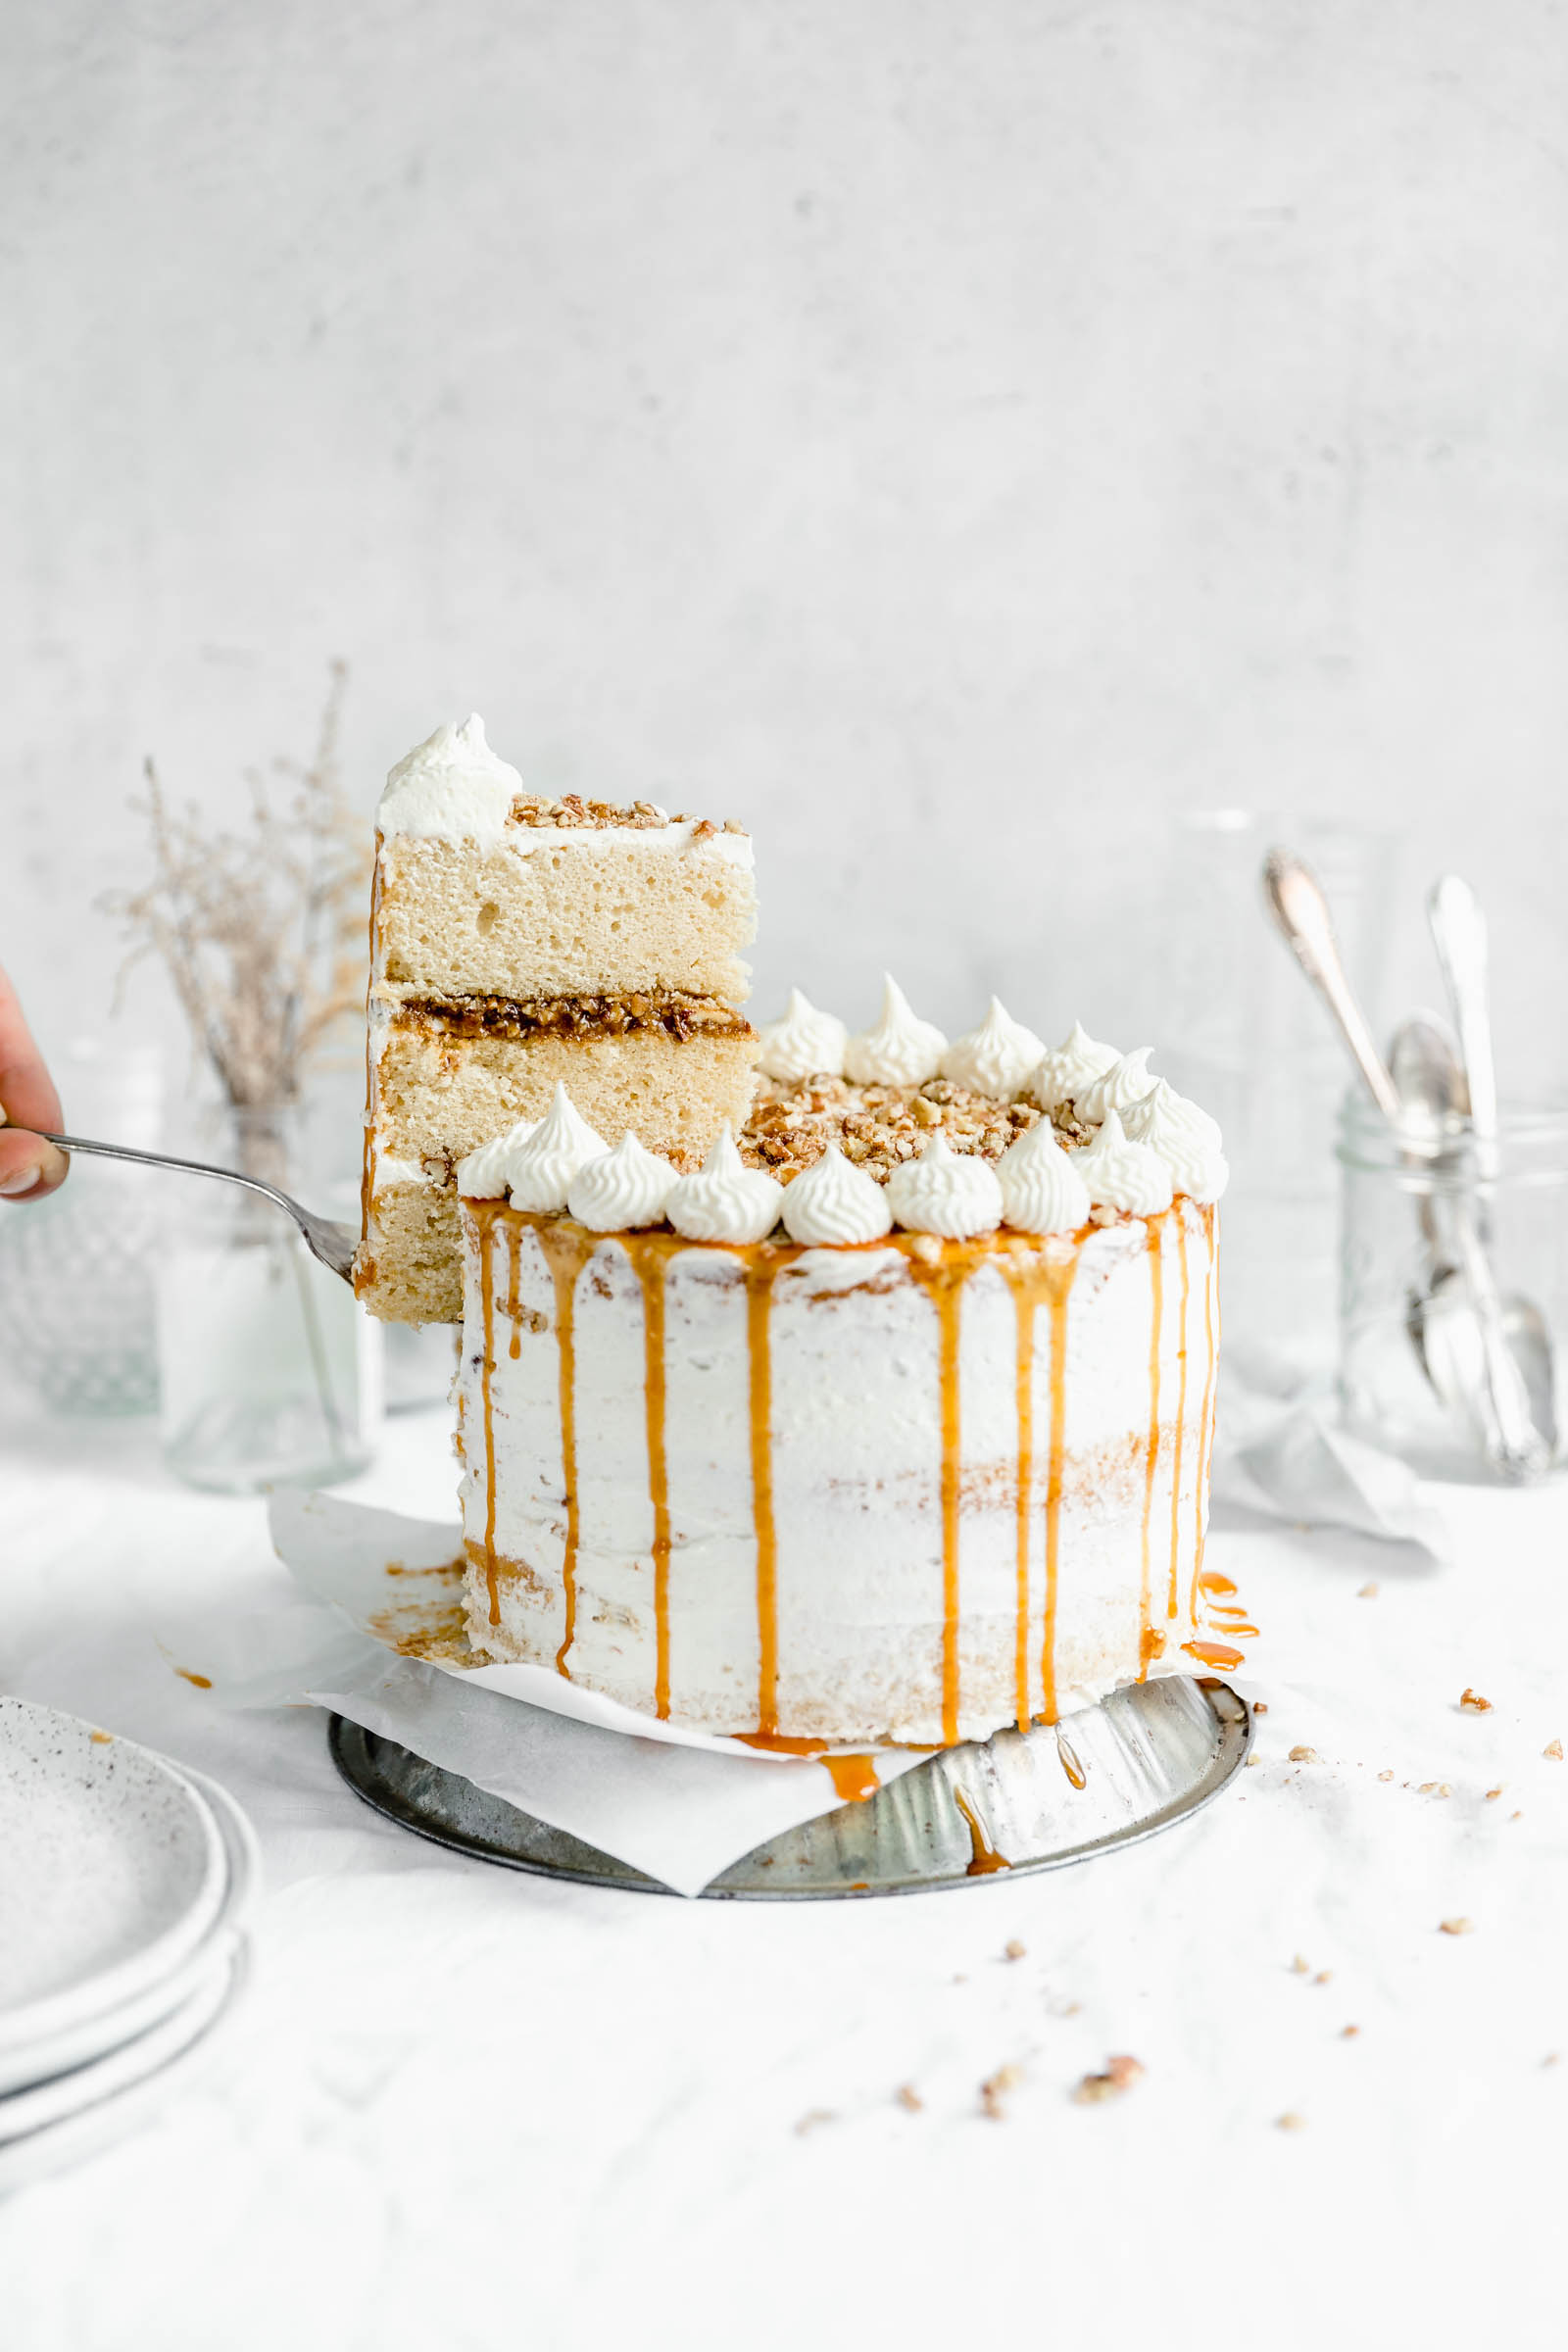 Praline layer with a slice of cake being lifted out. Get it this Thanksgiving season :)